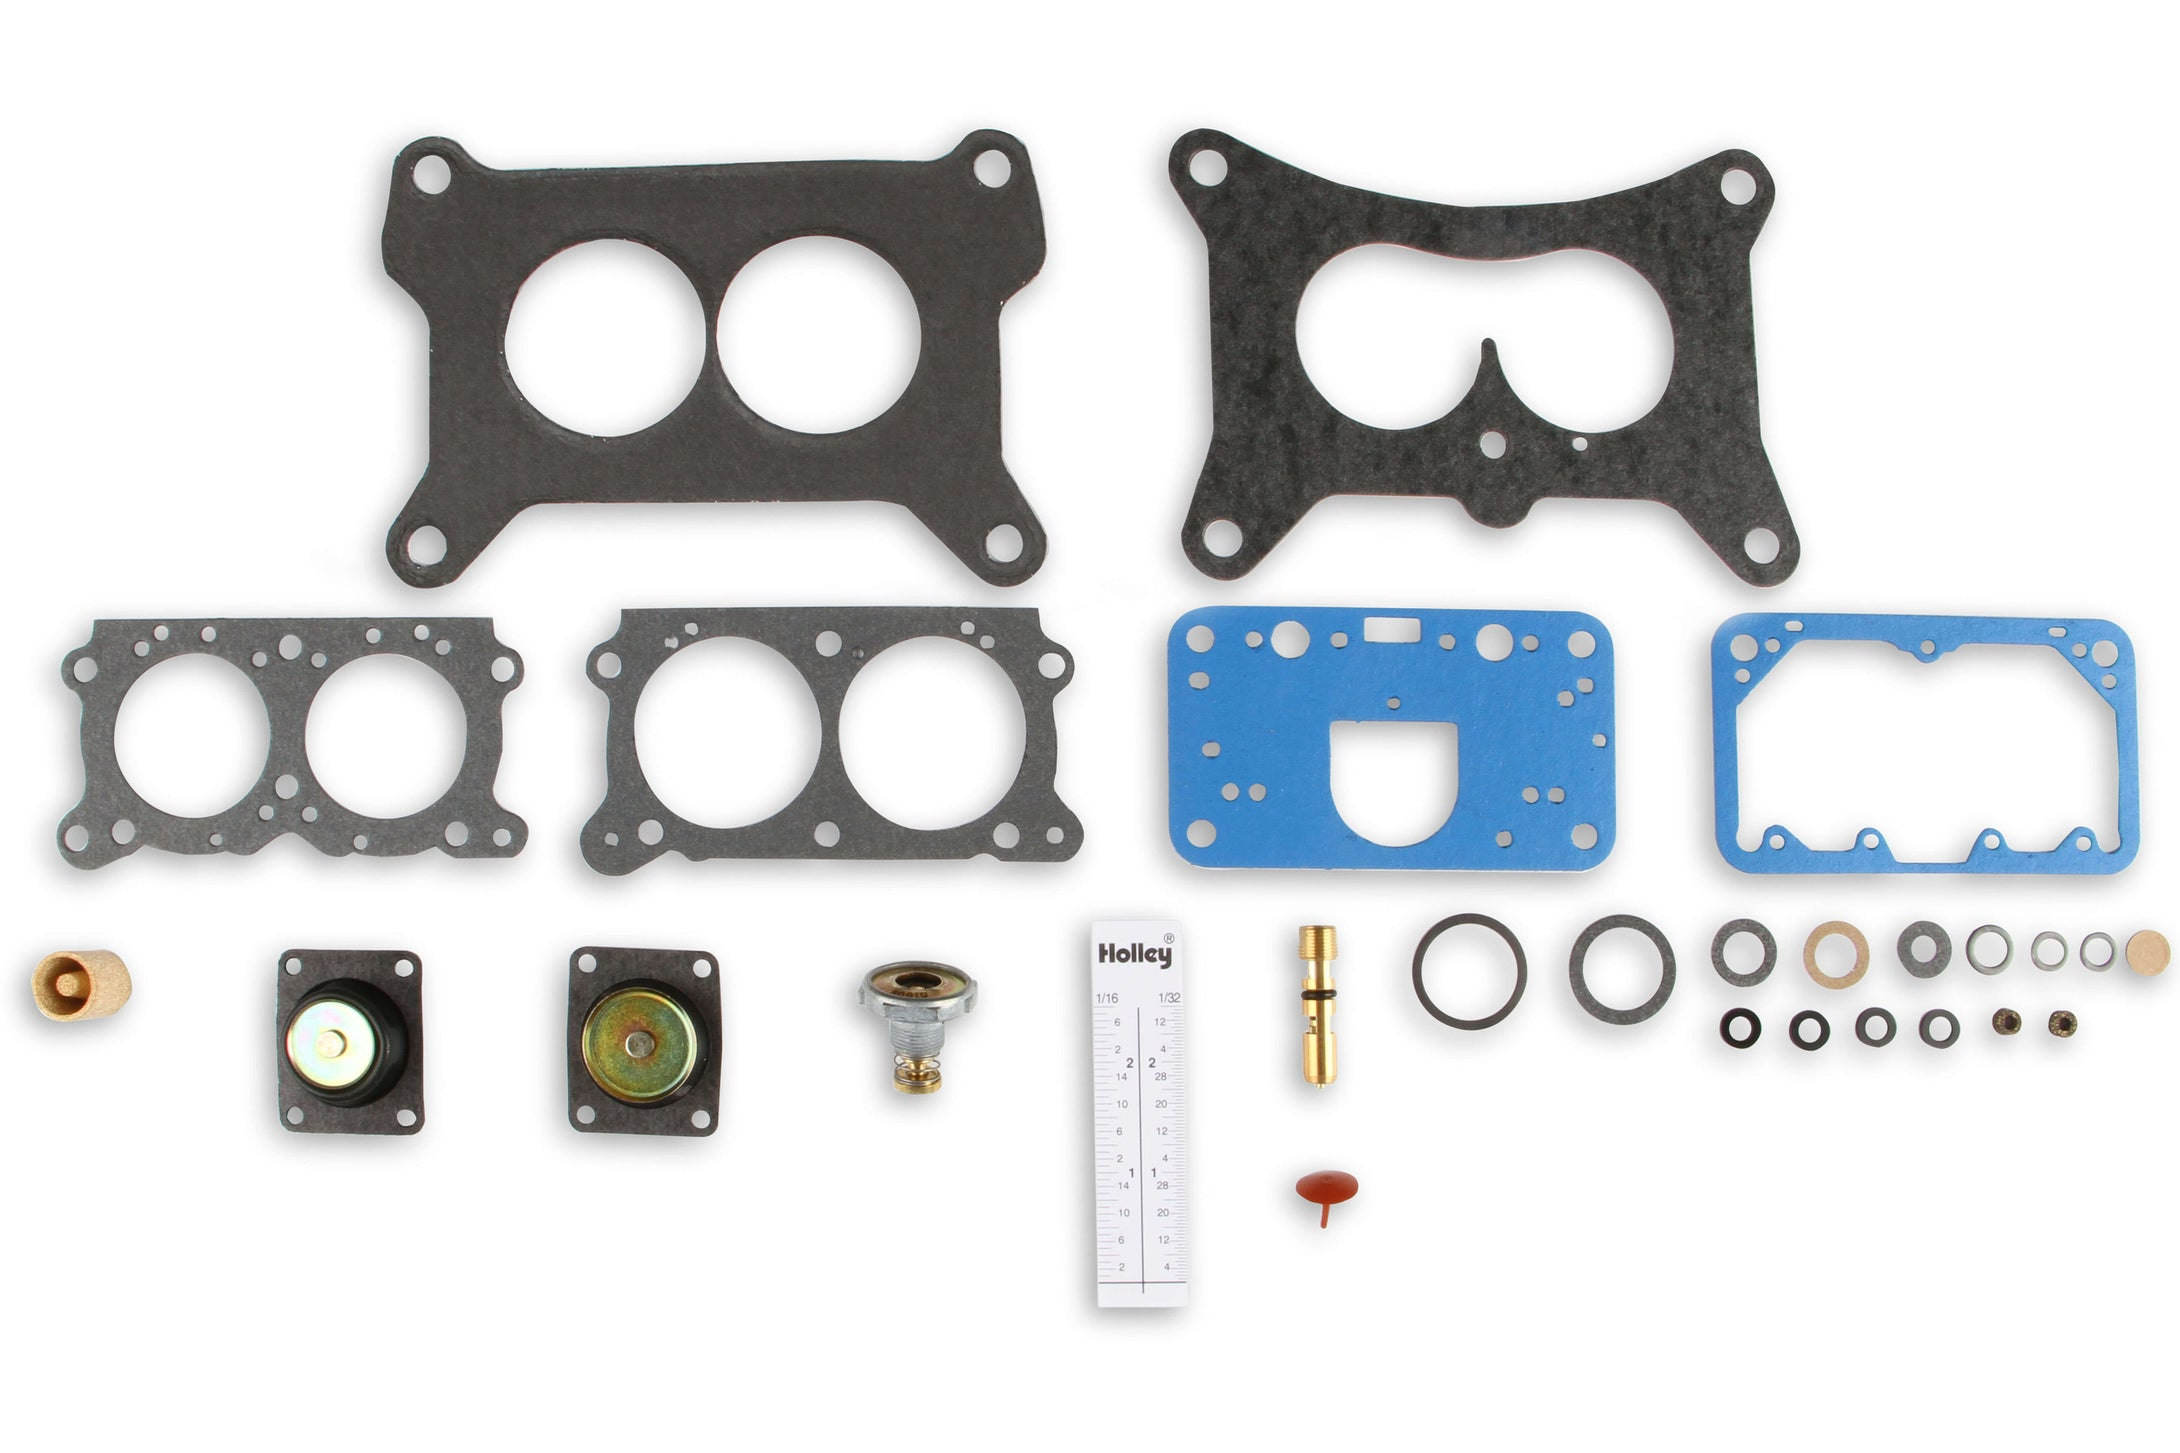 Holley Fast Kit Carburettor Rebuild Kit Model Number 2300 2BBL 350-500CFM